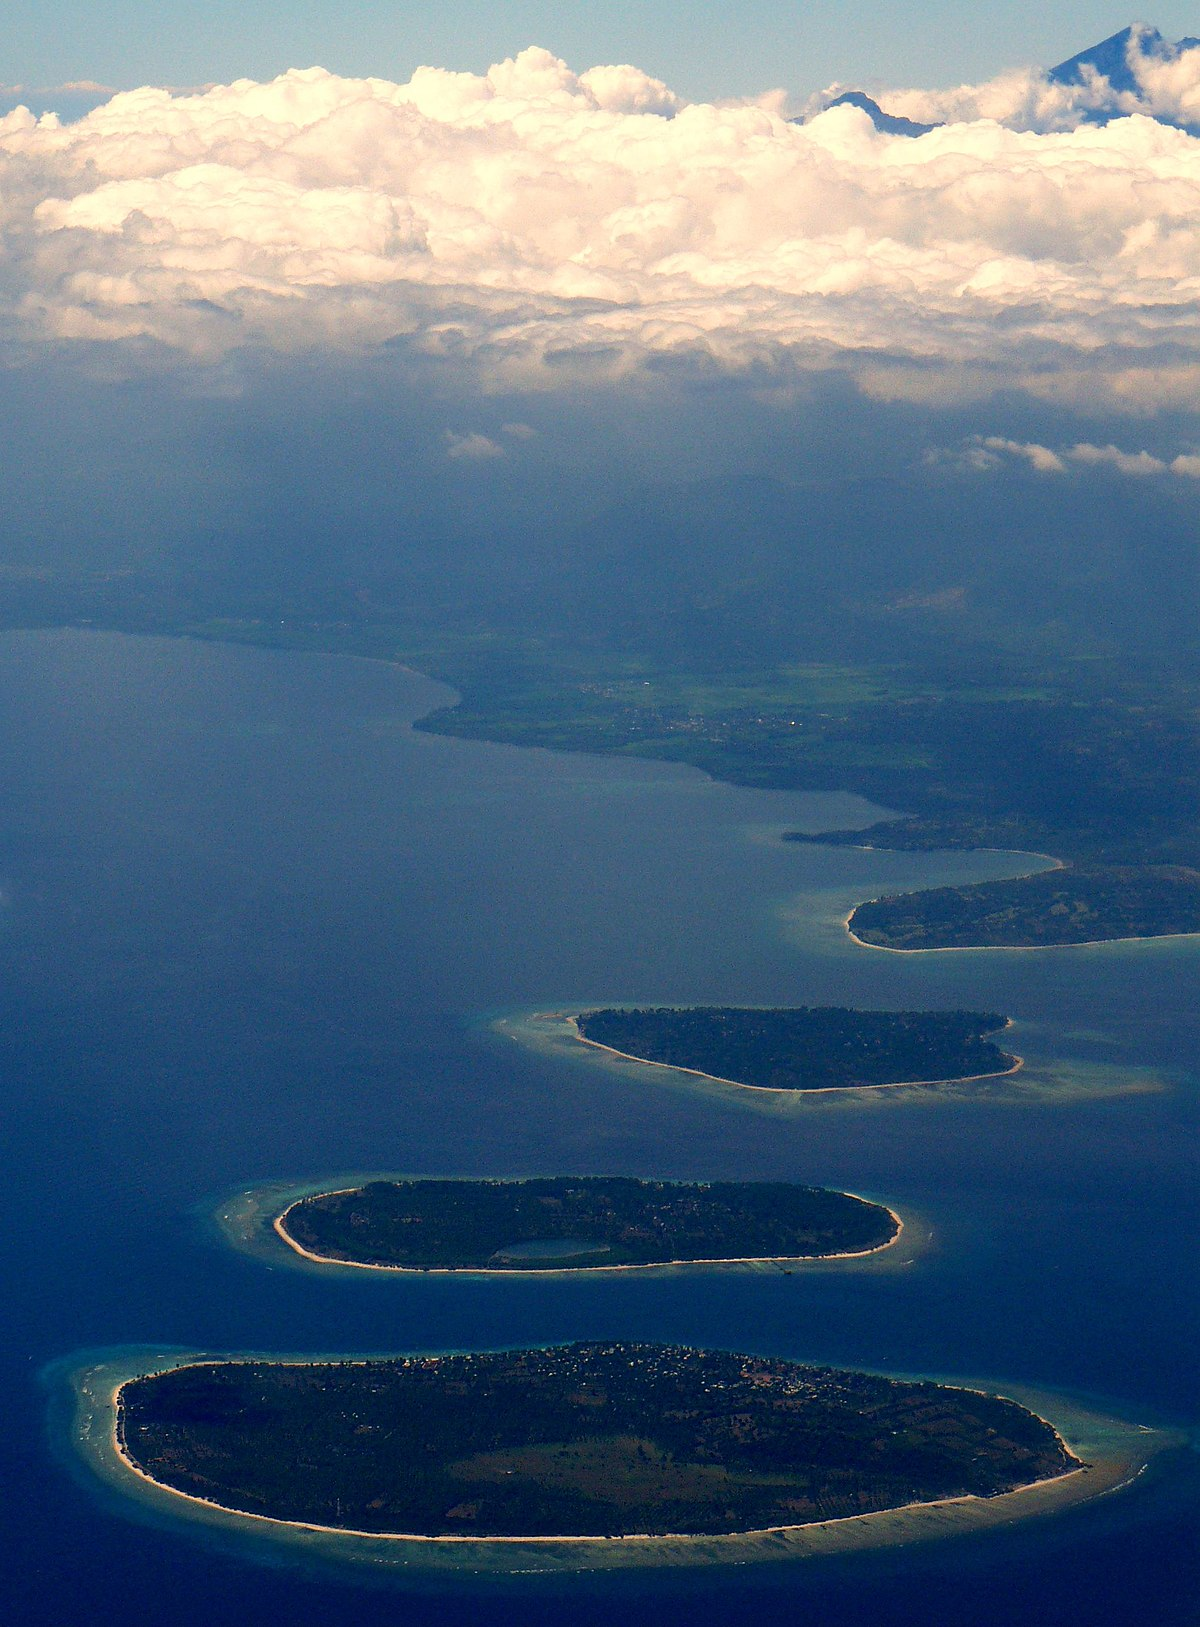 Gili Lombok Gili Islands Travel Guide At Wikivoyage